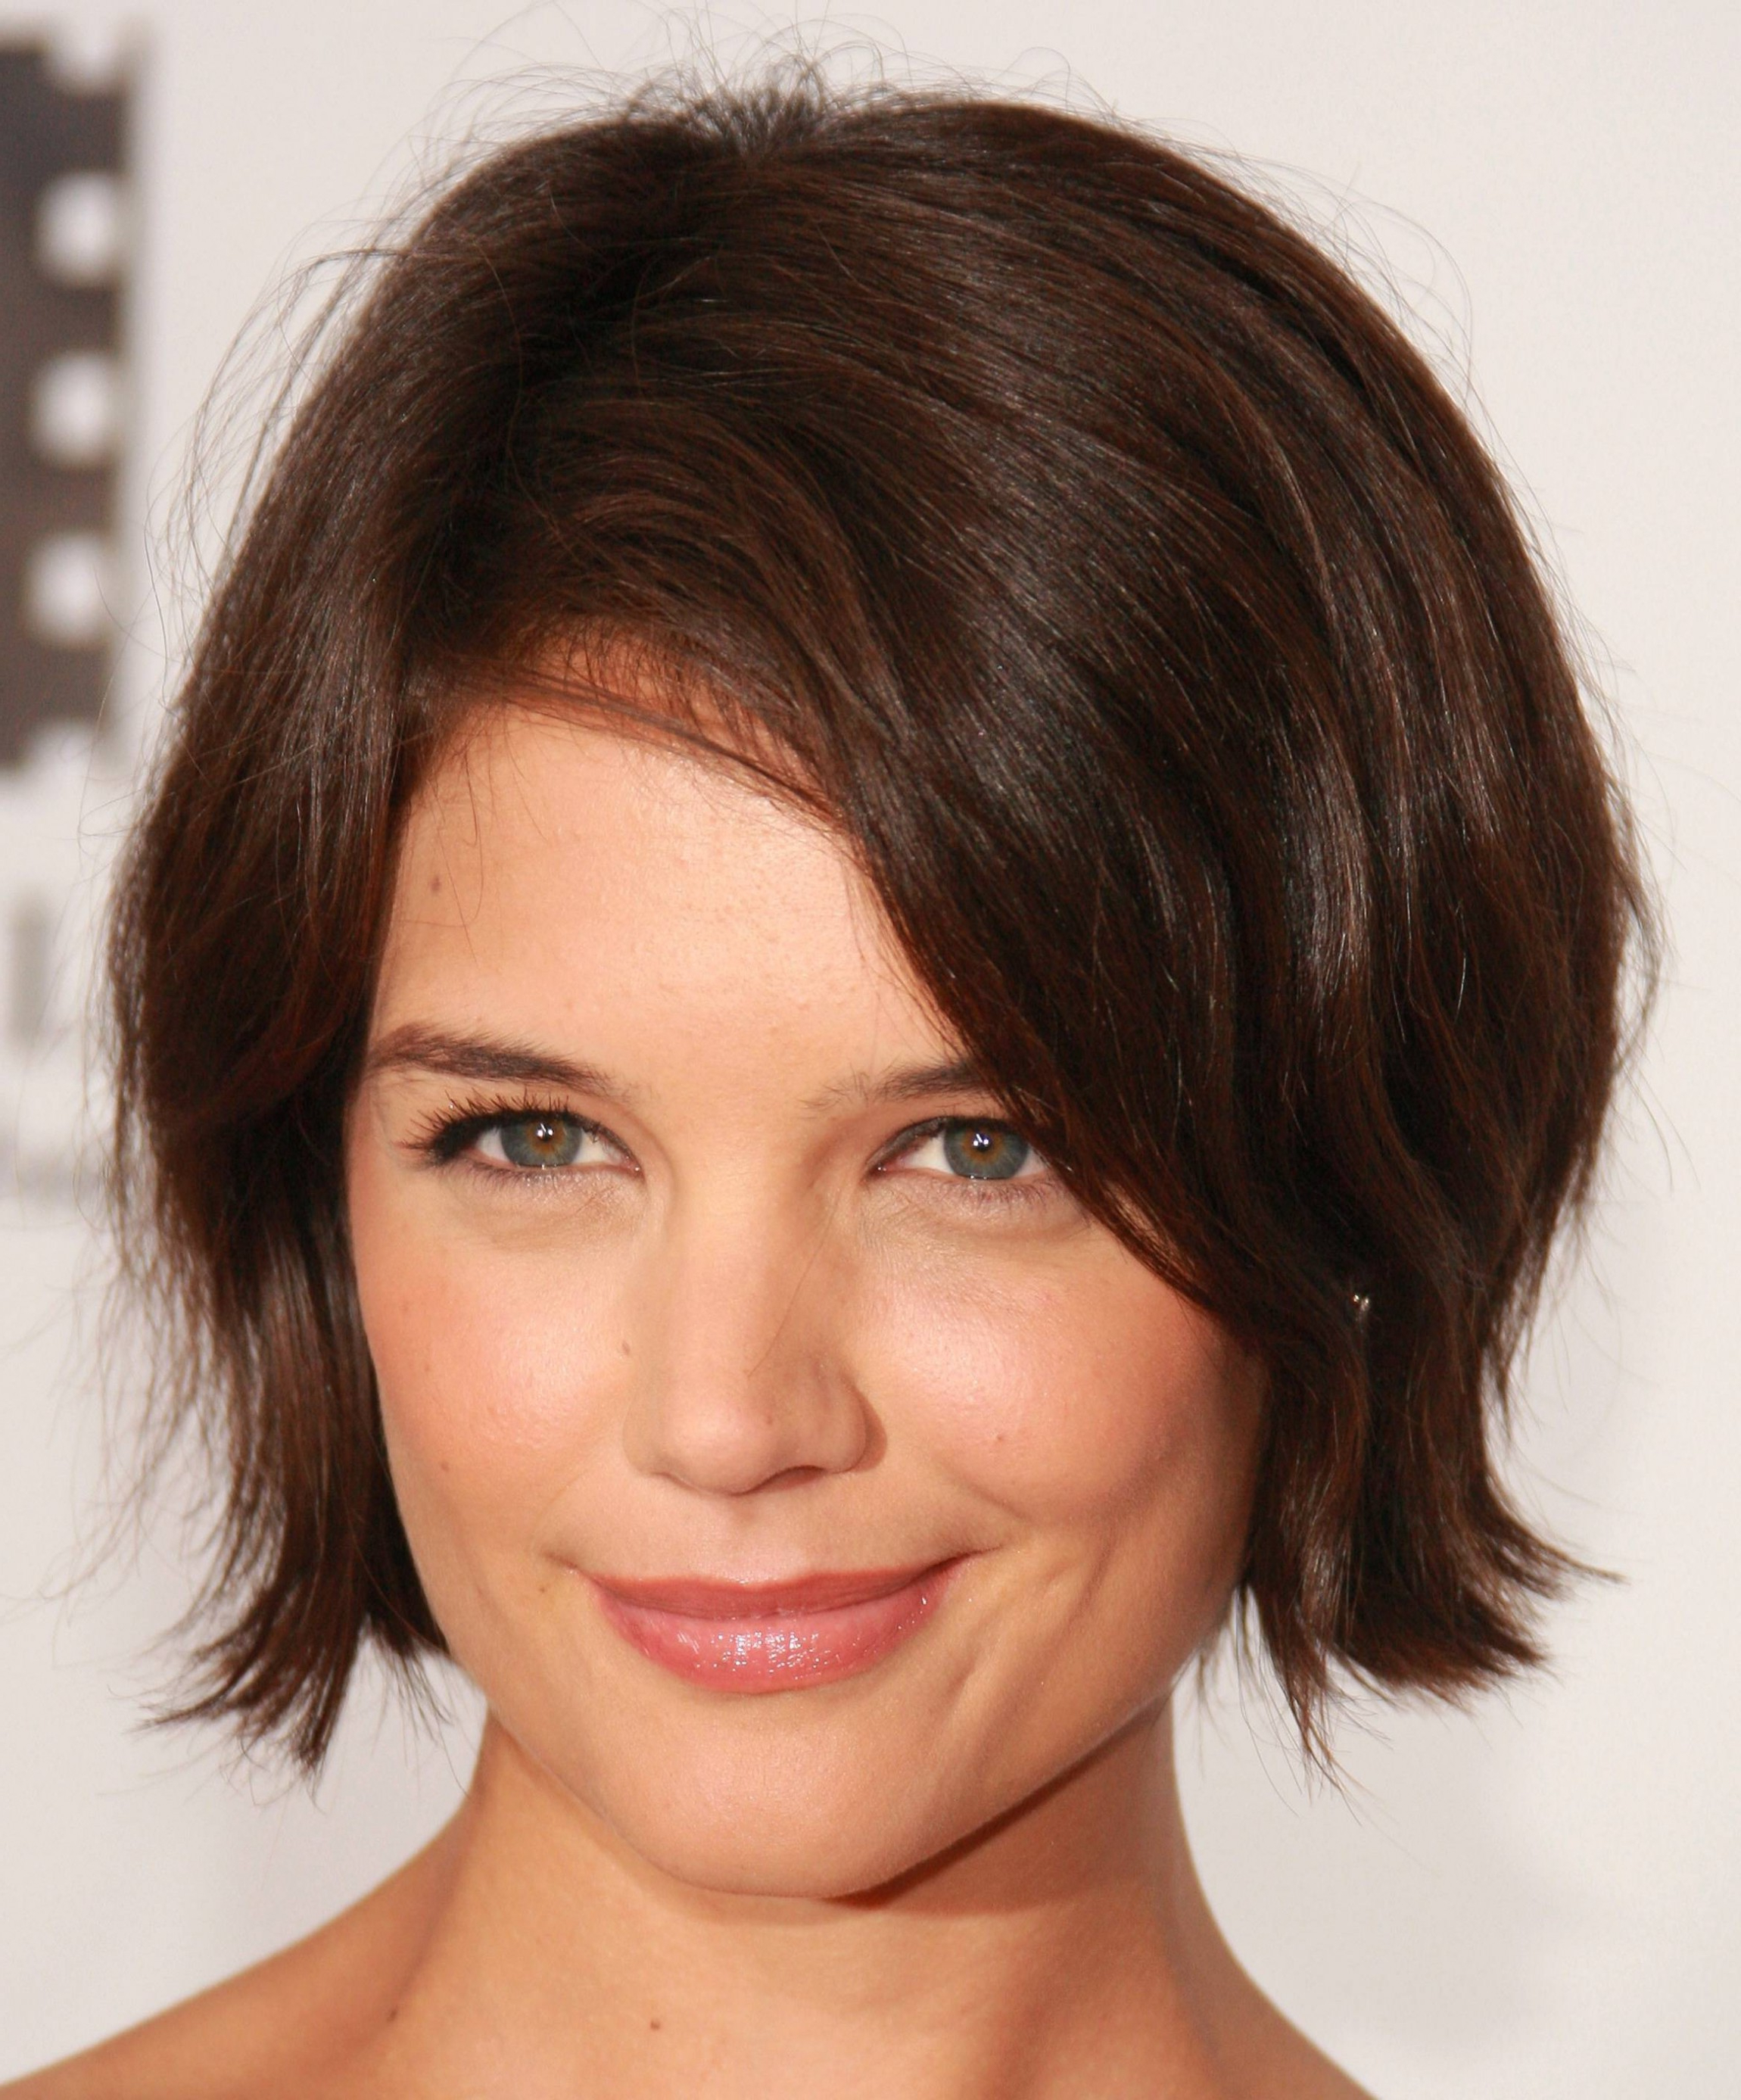 Best Short Hairstyles – Cute Hair Cut Guide For Round Face Shape Pertaining To Edgy Short Hairstyles For Round Faces (View 9 of 25)